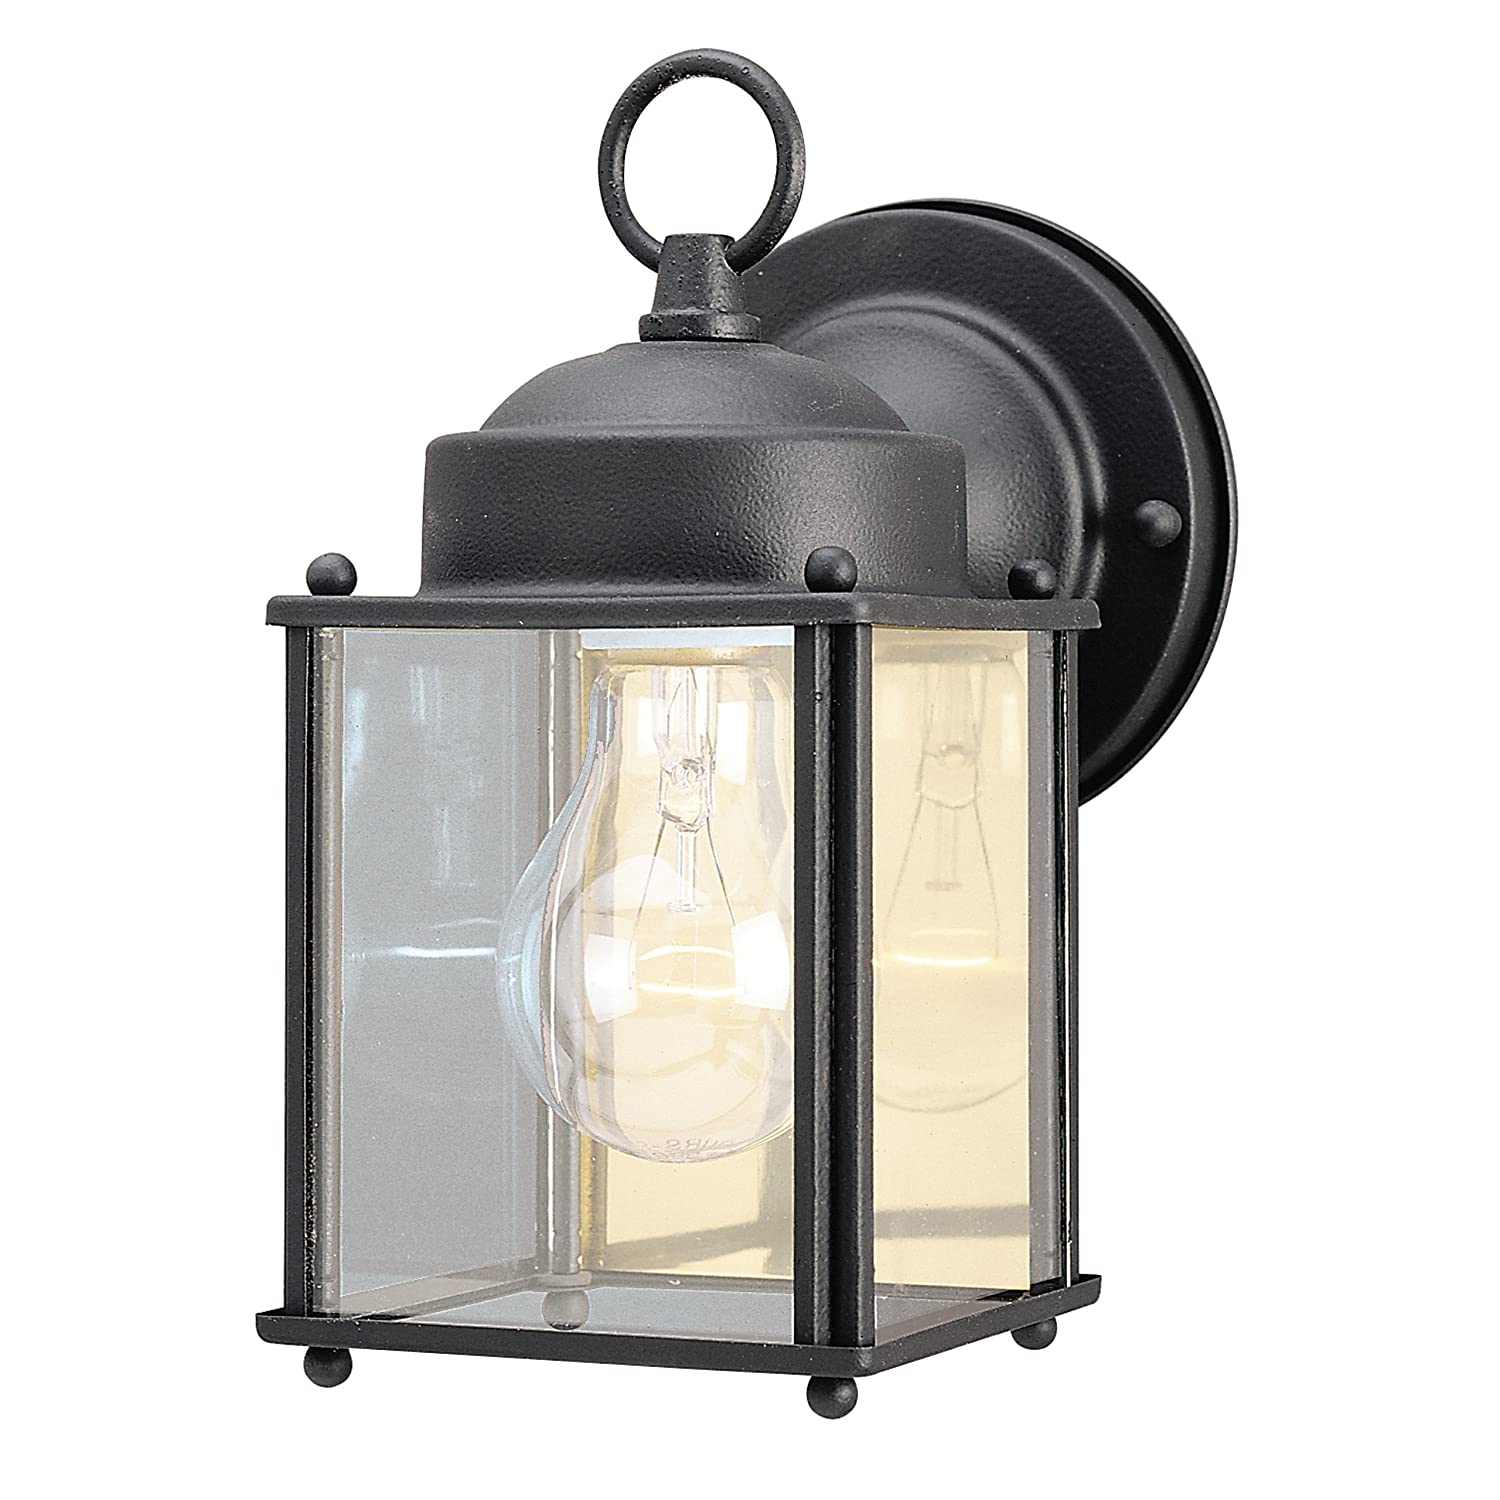 Westinghouse 6697200 One-Light Exterior Wall Lantern, Textured Black Finish on Steel with Clear Glass Panels, 1 pack